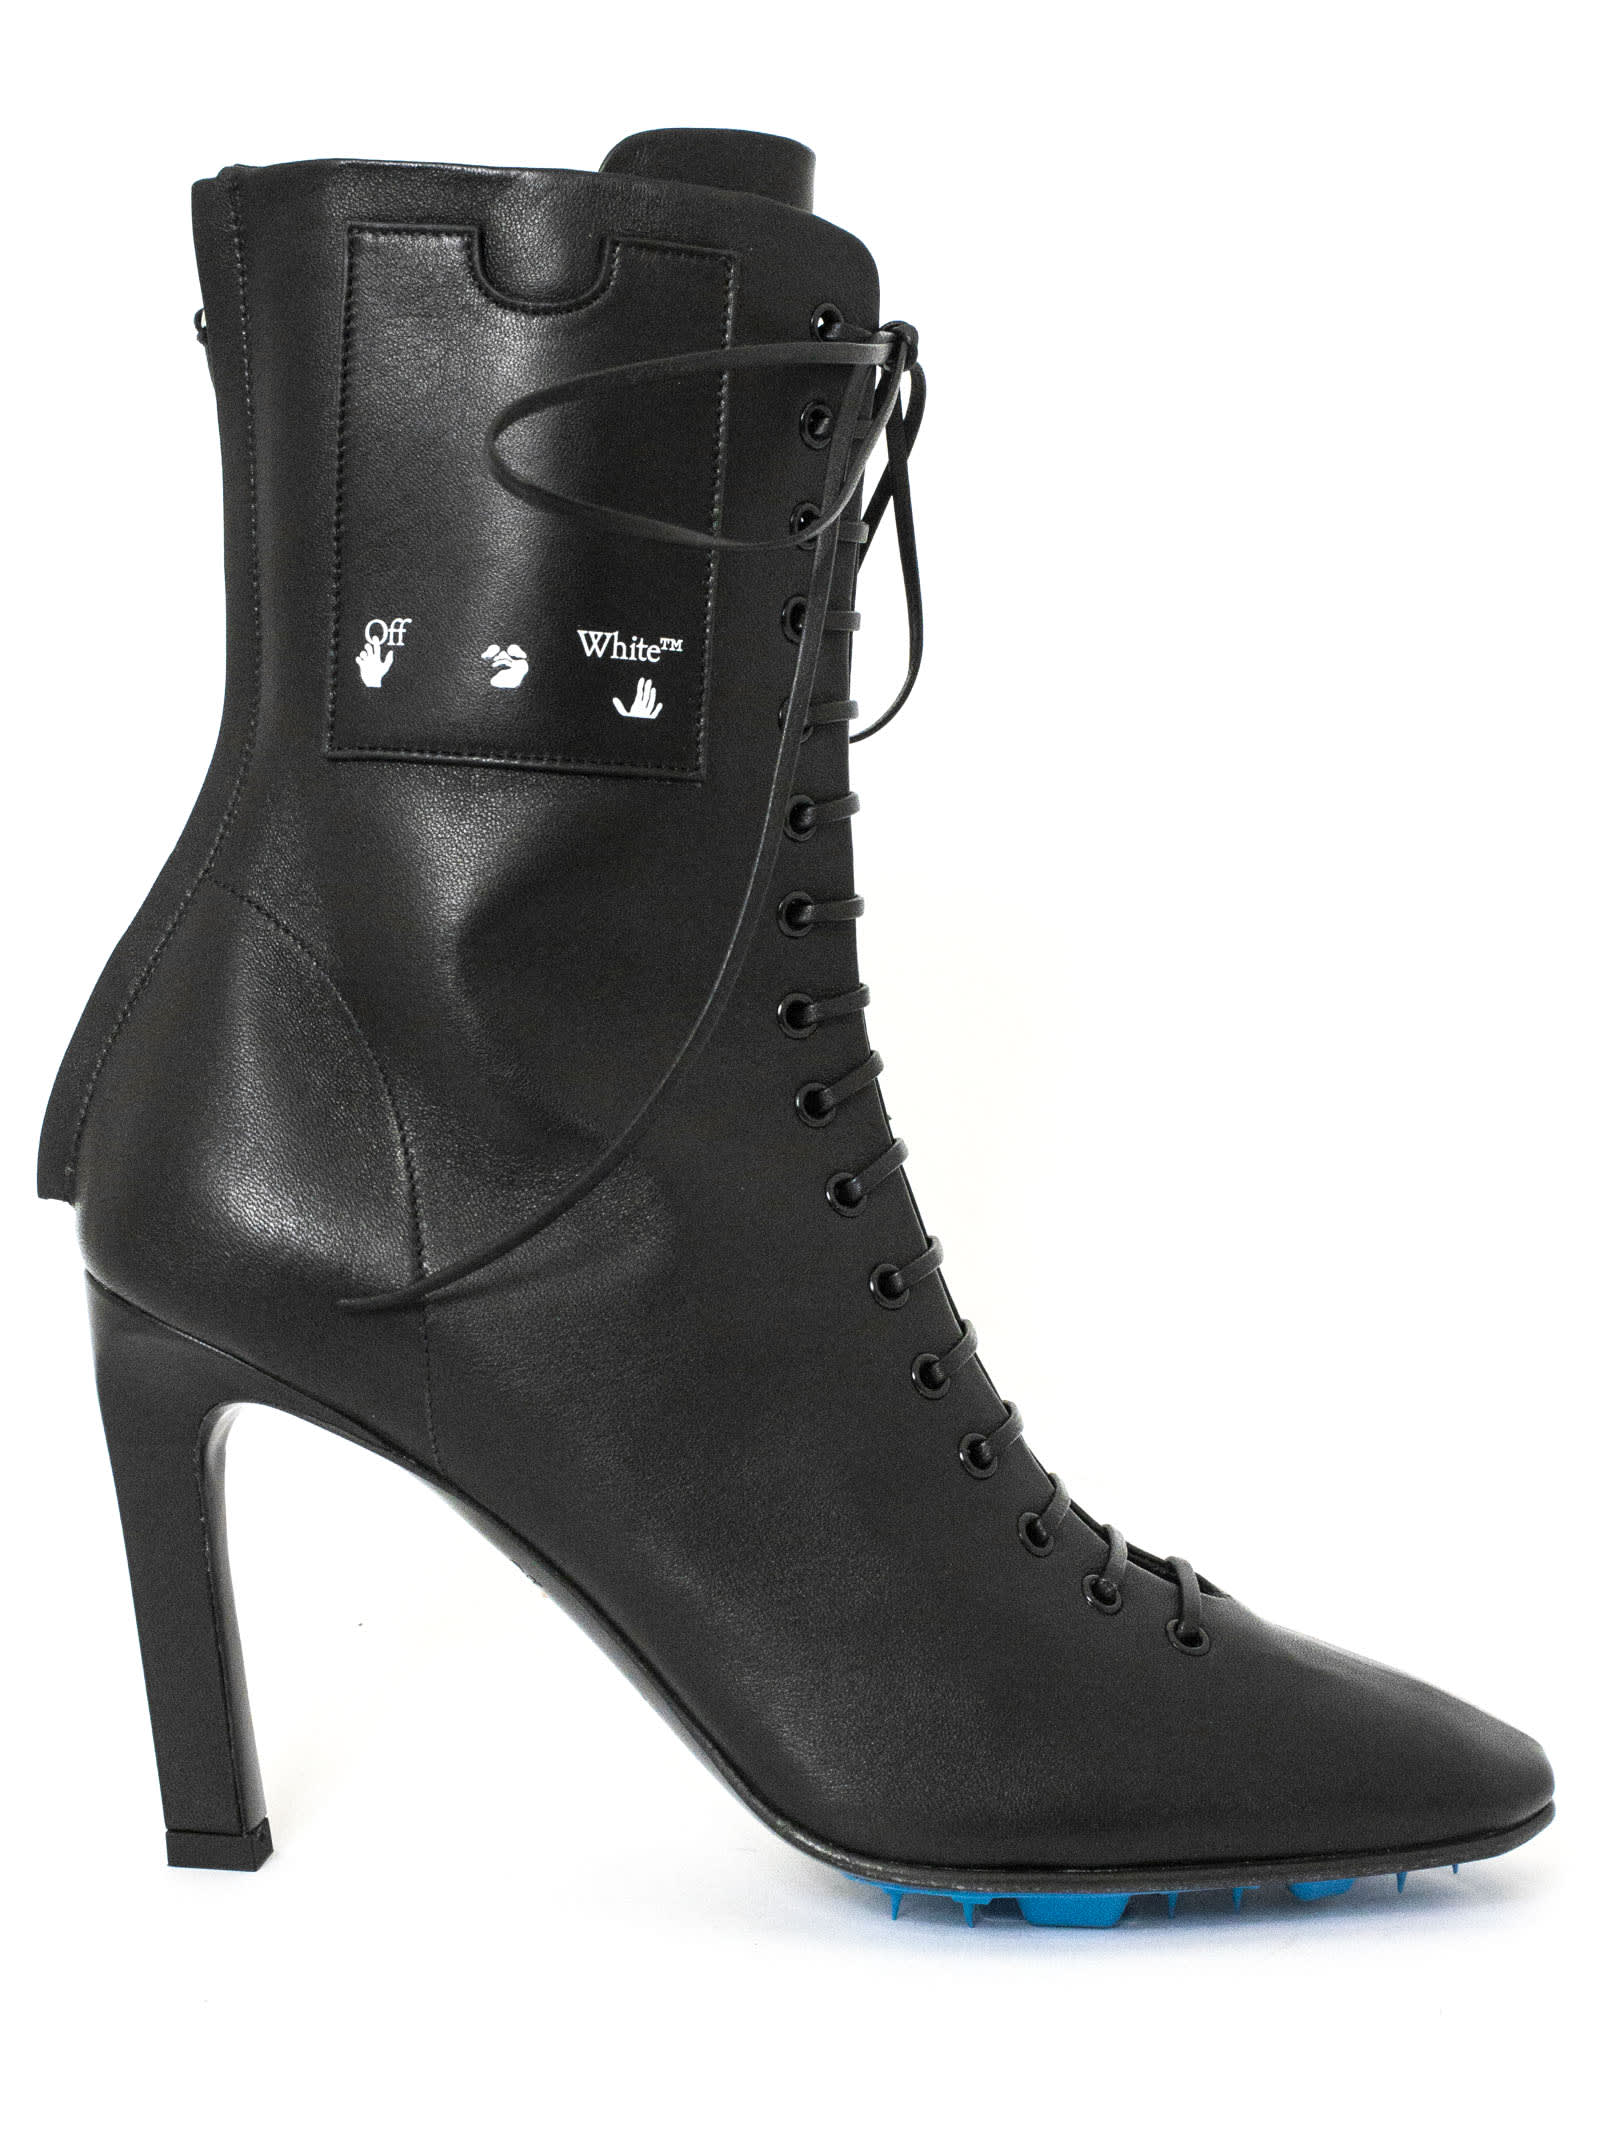 Off-White Black Leather Ankle Boots